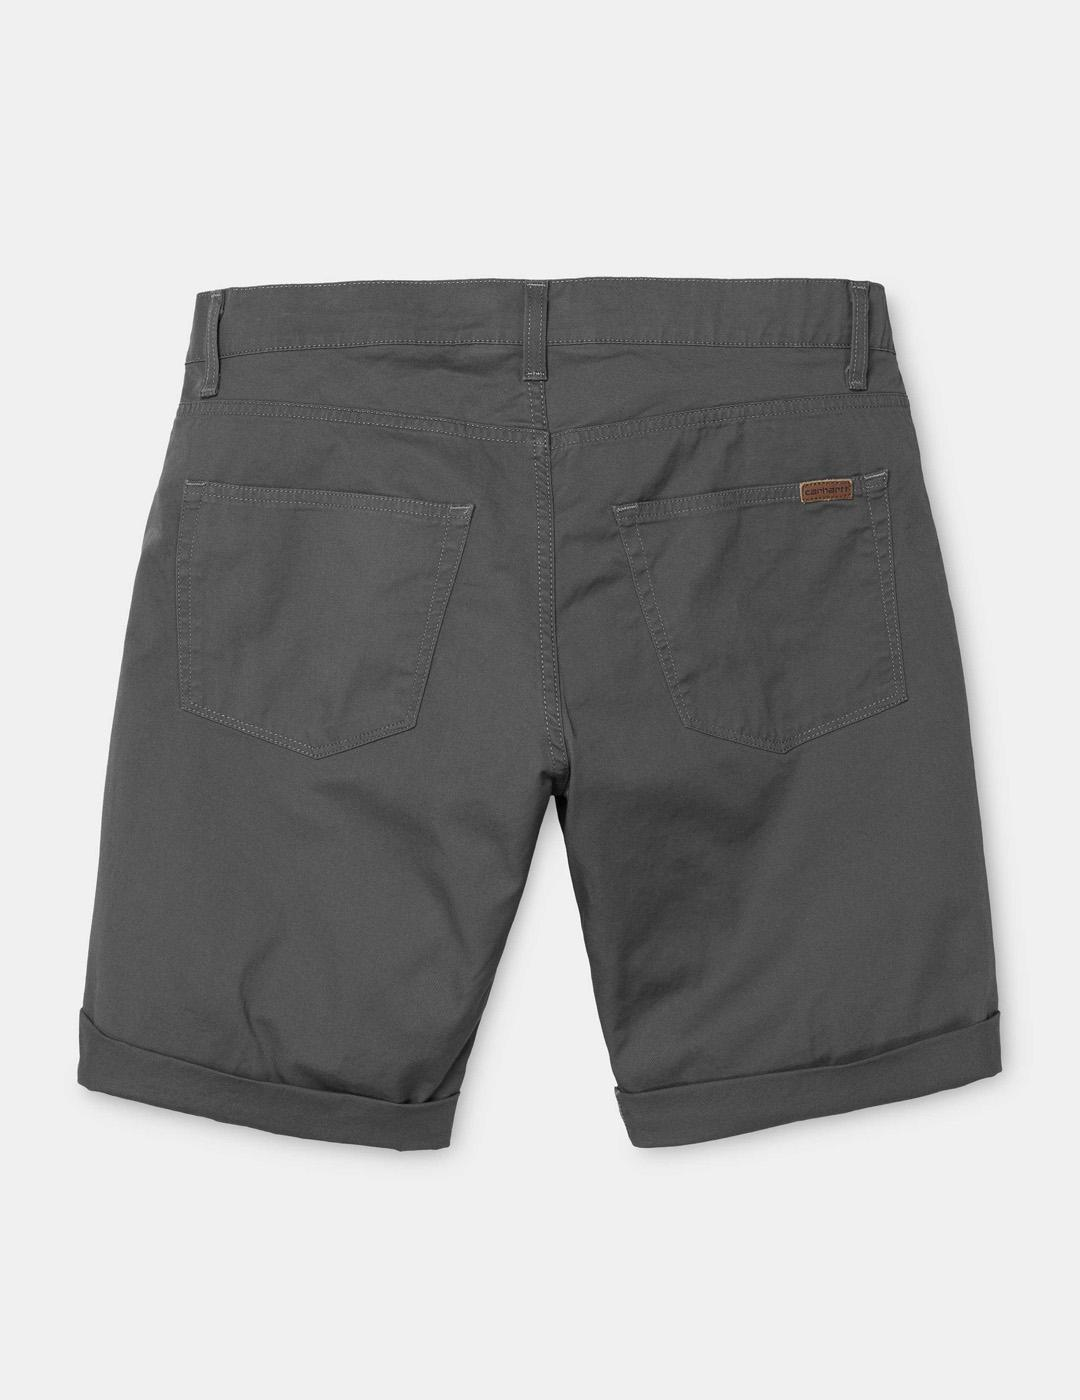 Bermuda Carhartt SWELL - Blacksmith rinsed